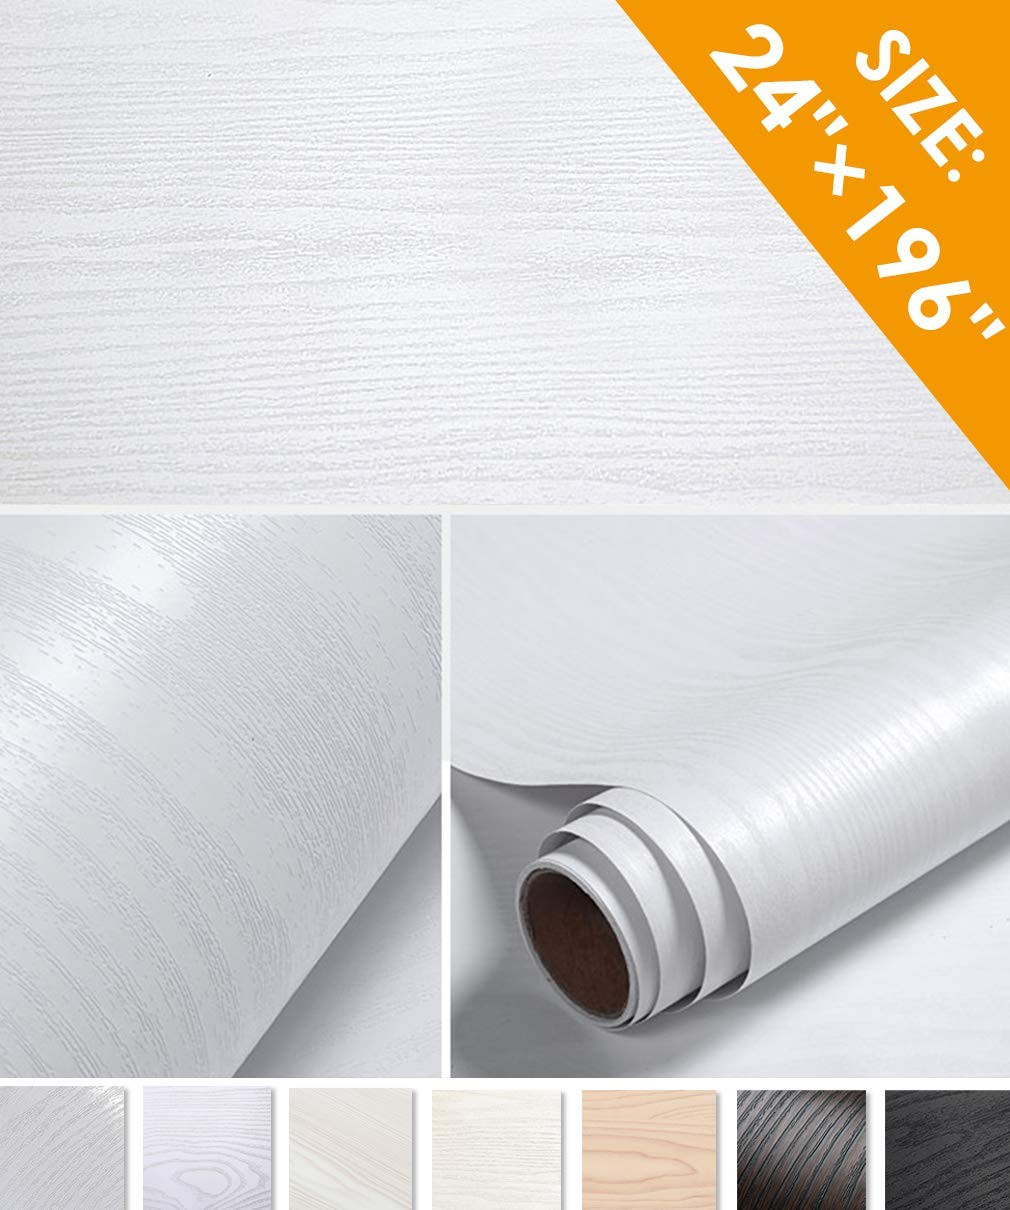 Oxdigi White Wood Grain Contact Paper 24 x 196 inches Decorative for Countertops Cabinets Shelf Liners Doors Self-Adhesive Film Peel & Stick Waterproof Removable Wallpaper by Oxdigi